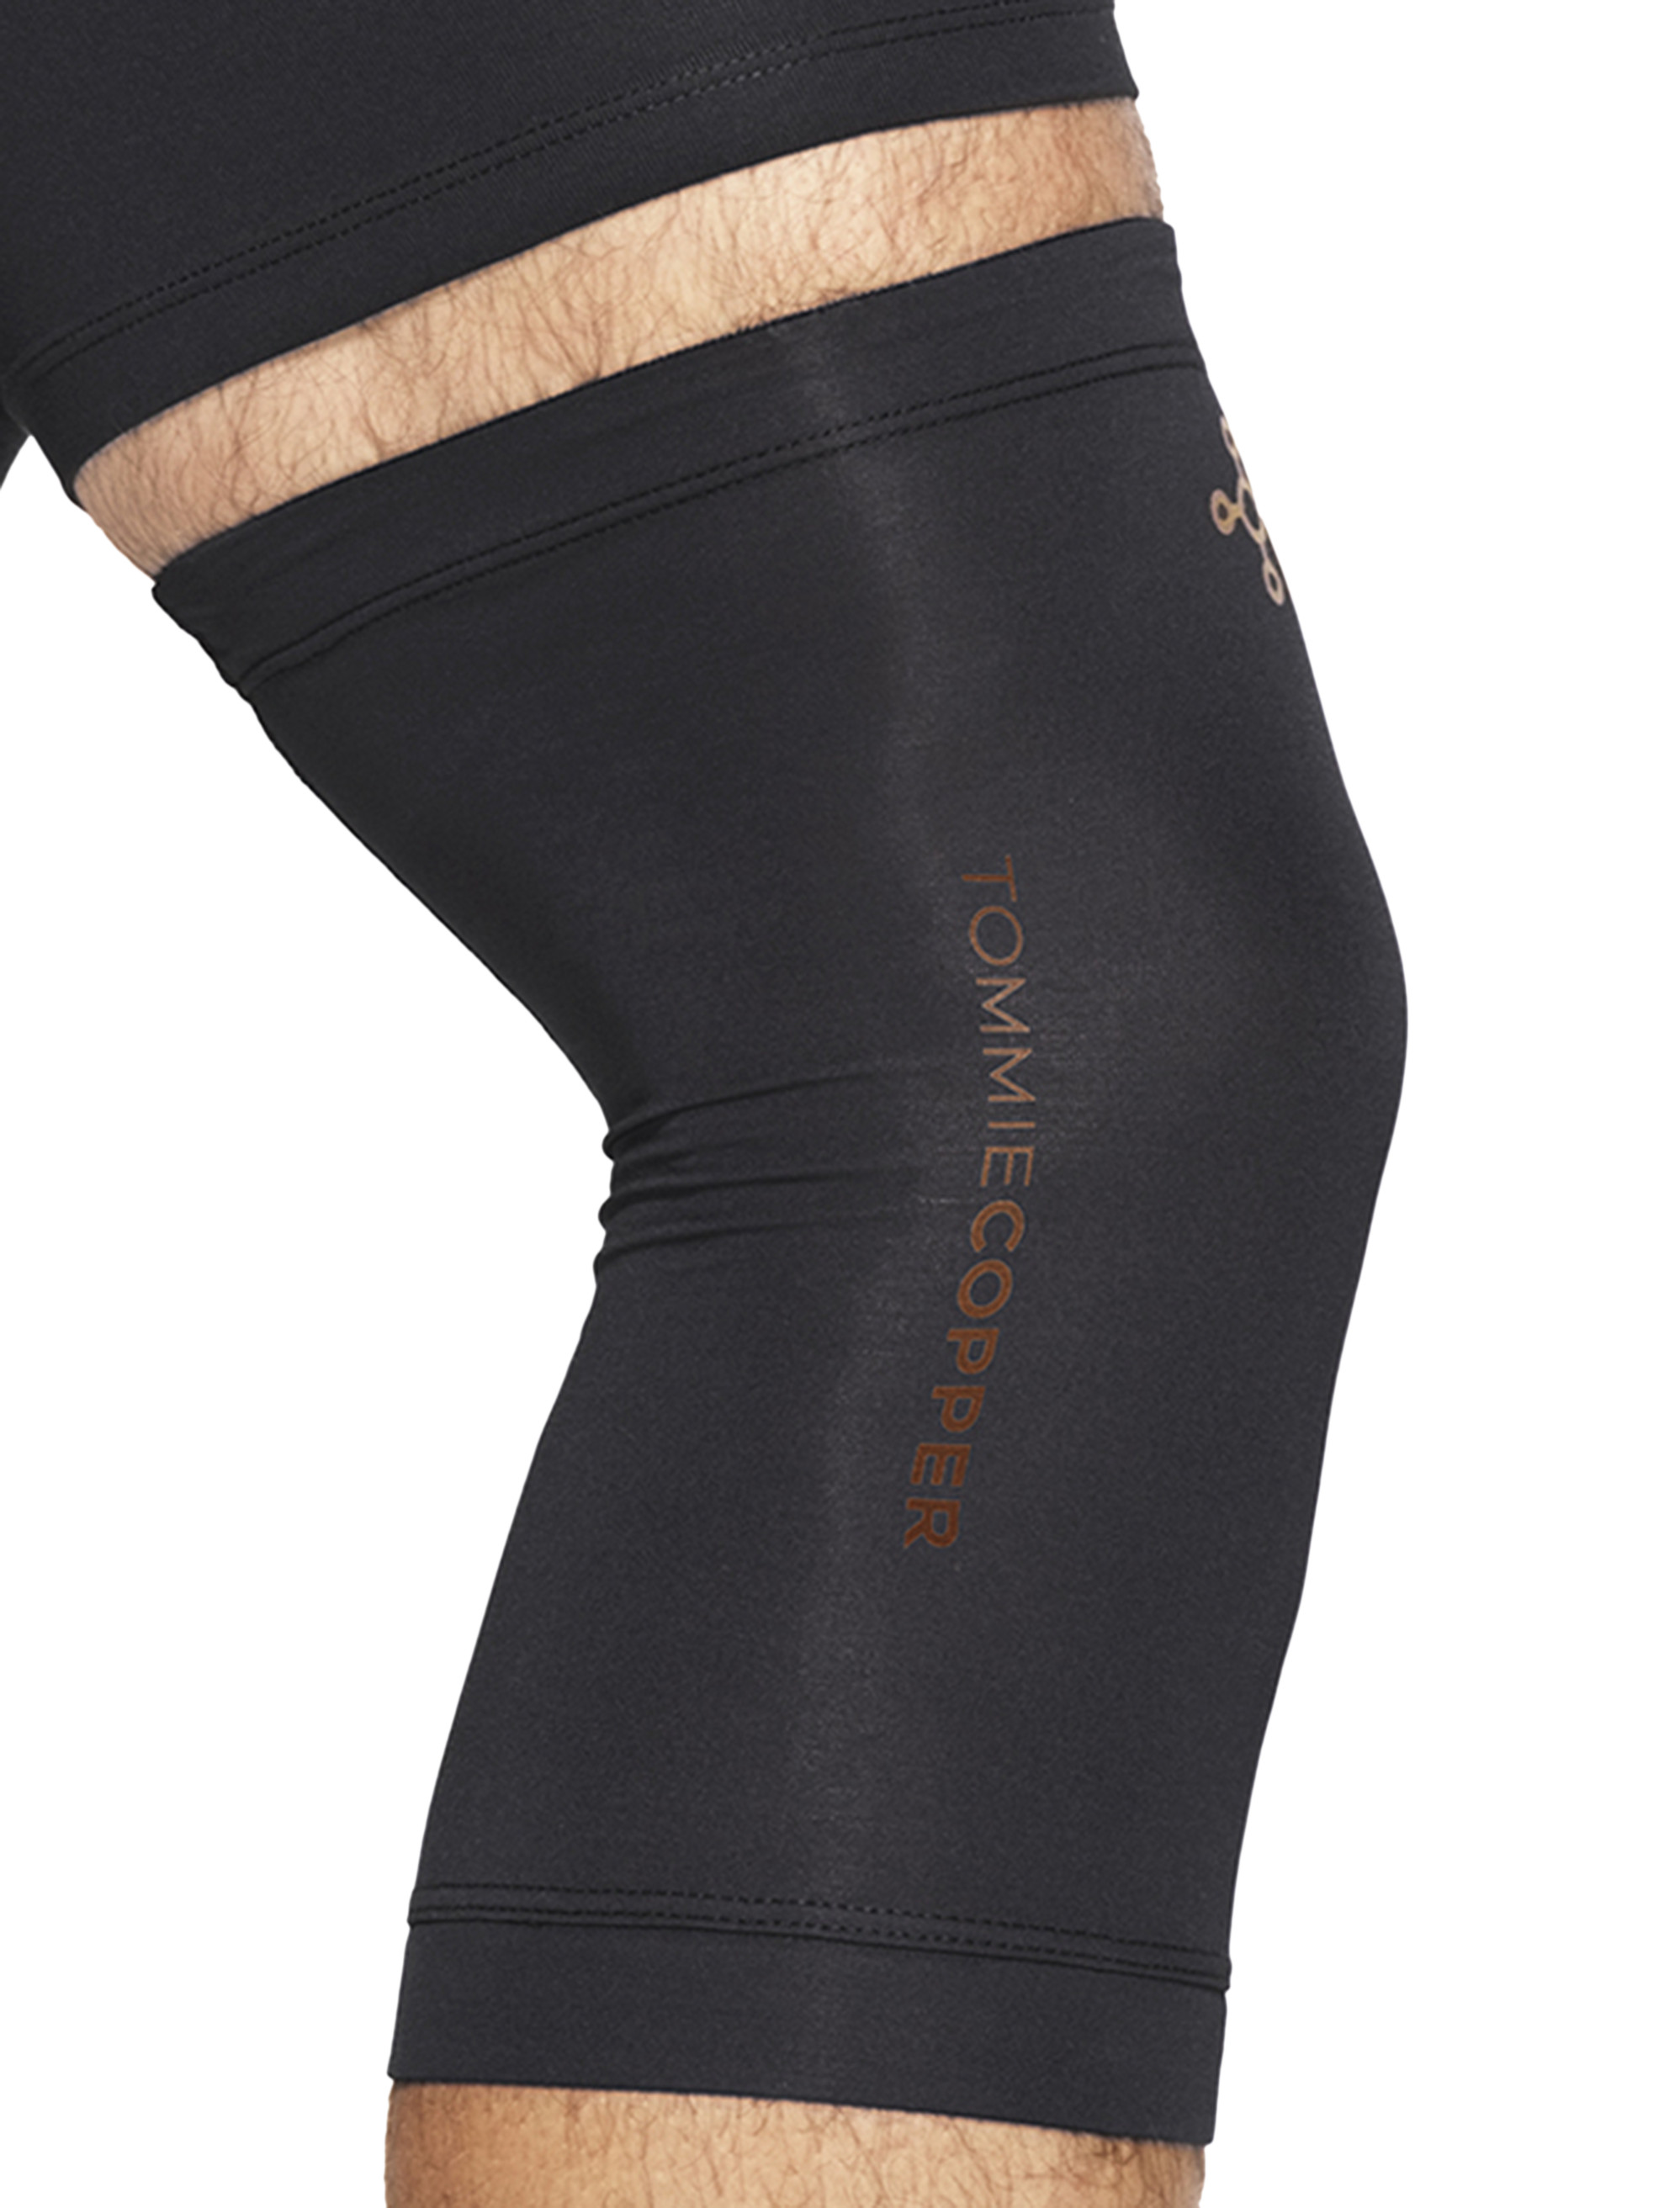 Stores that sell tommie copper - Tommie Copper Men S Recovery Compression Knee Sleeve